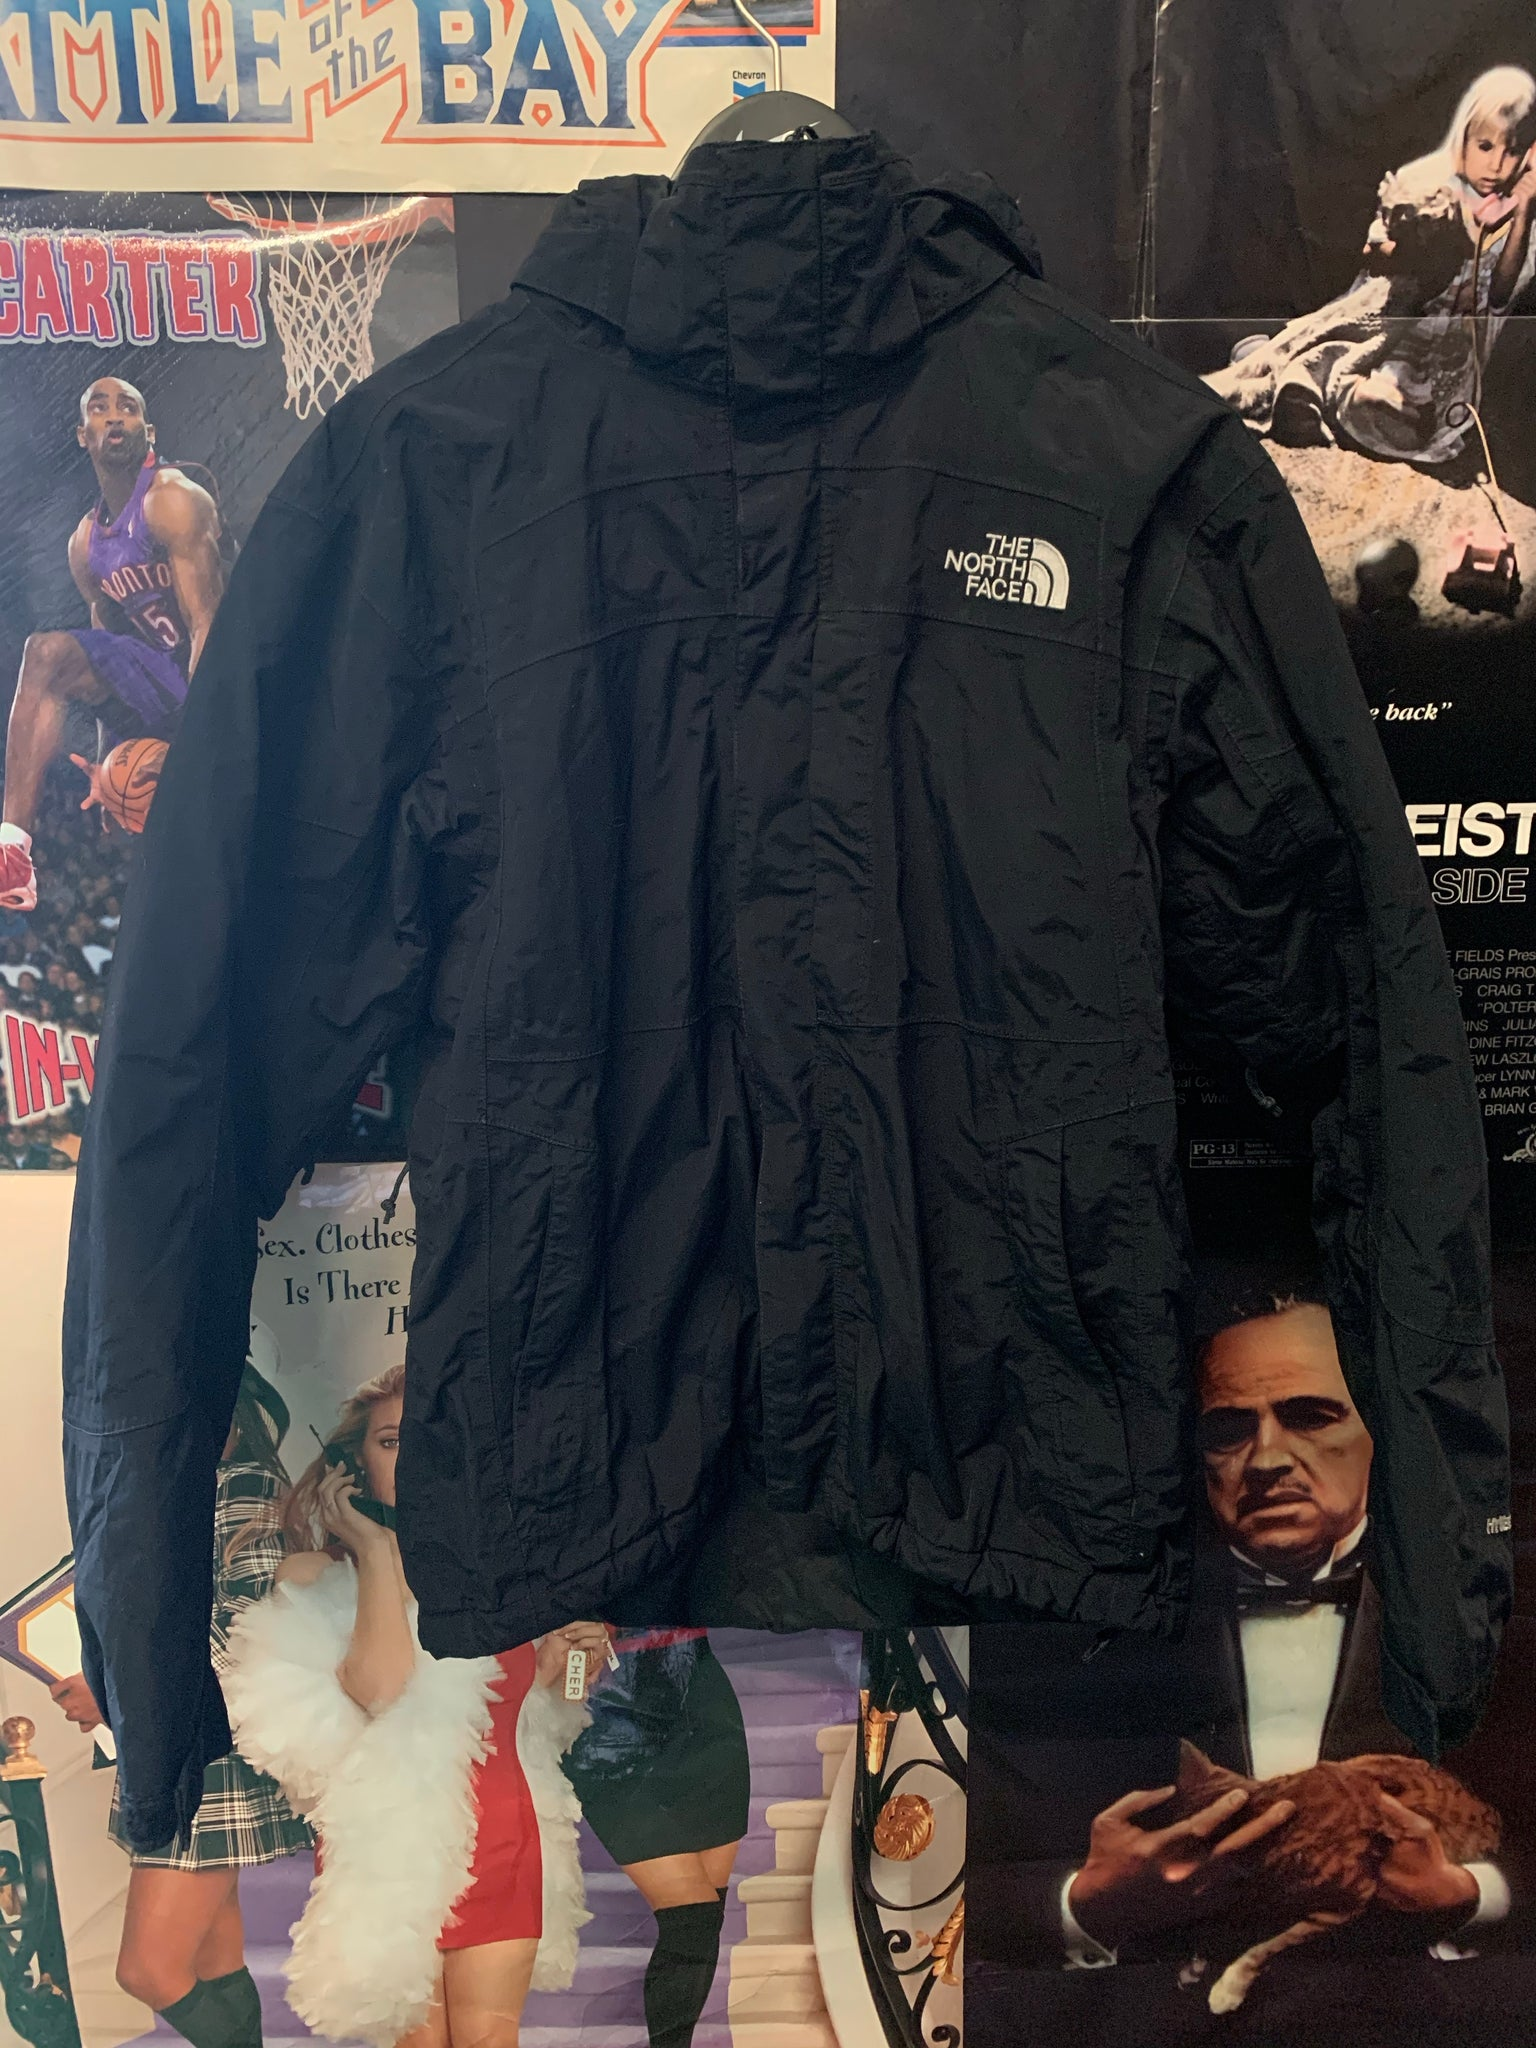 The North Face Jacket Small - Decades of dope